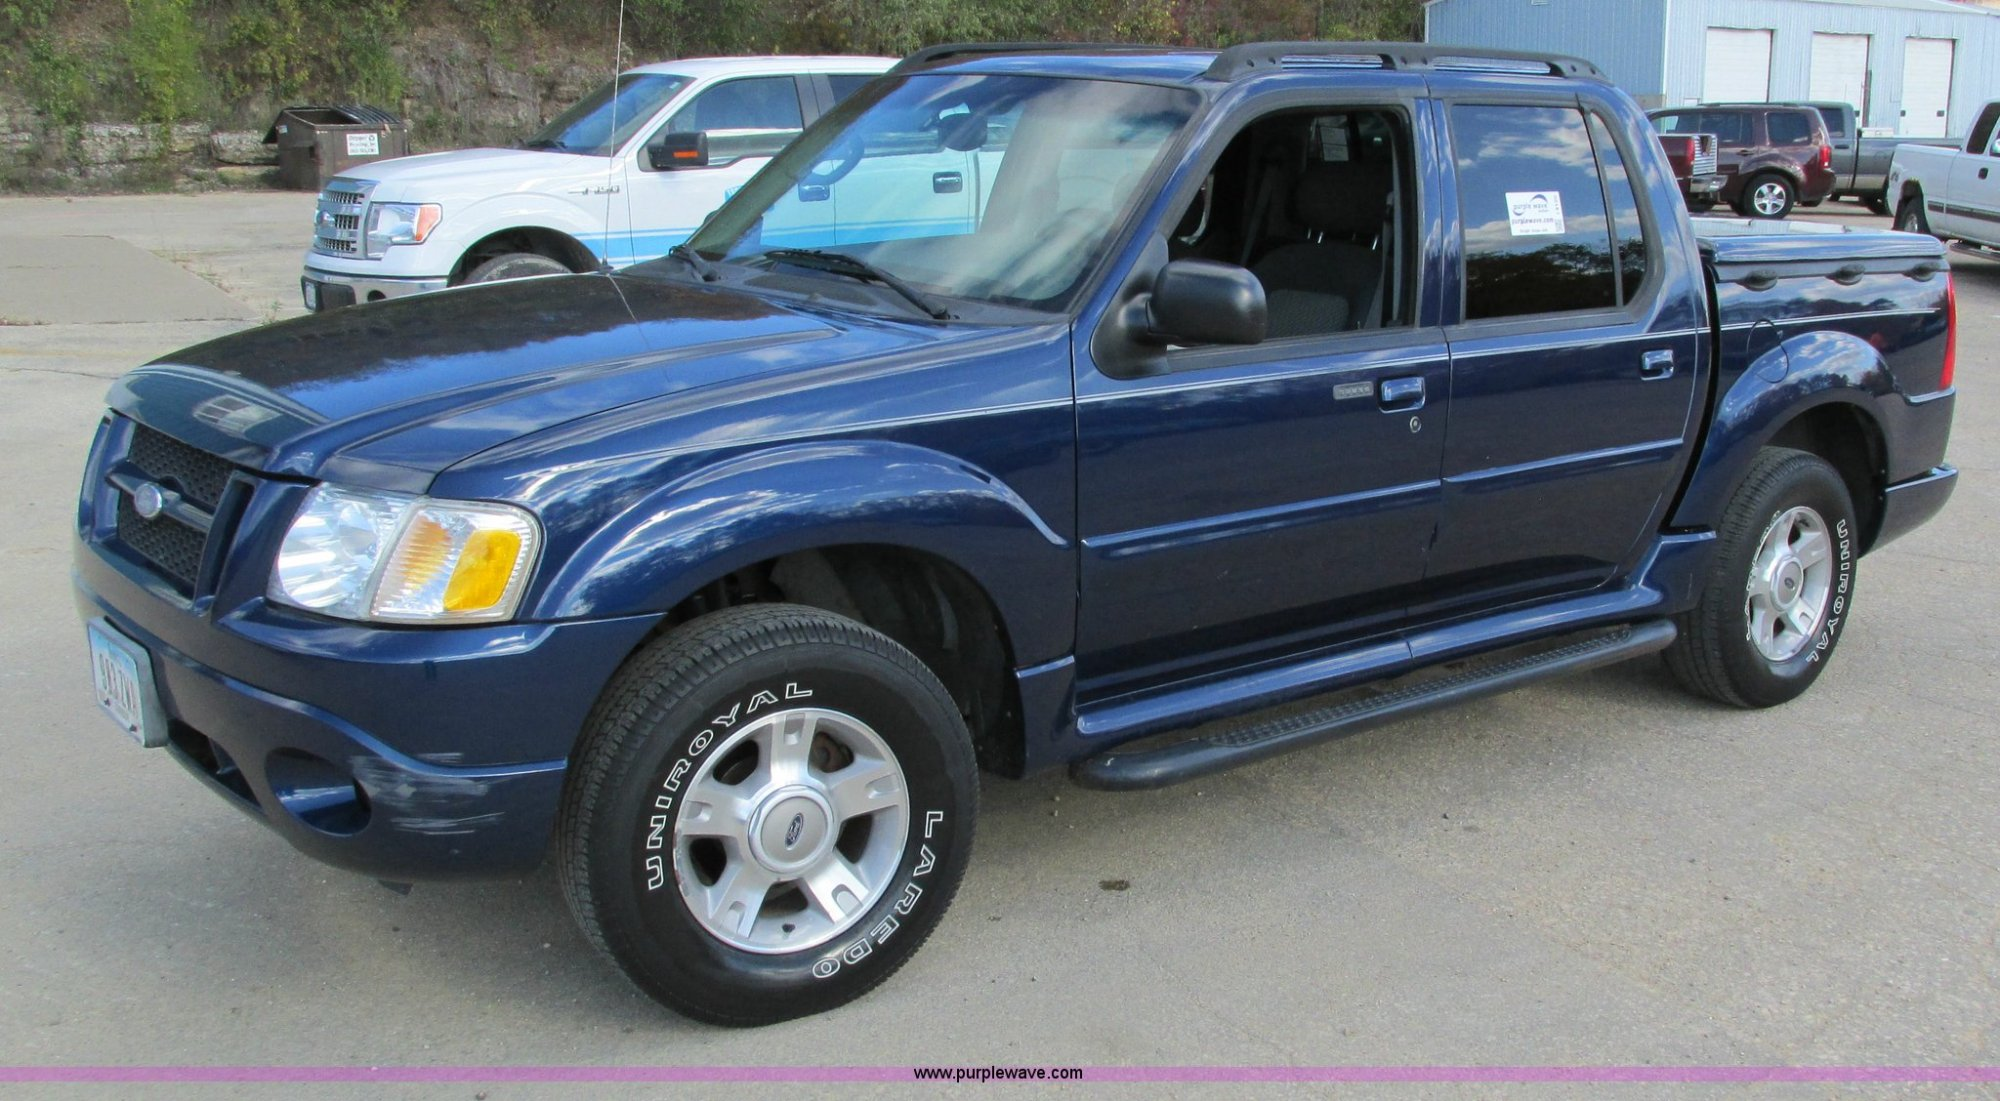 hight resolution of i4120 image for item i4120 2004 ford explorer sport trac xl pickup truck